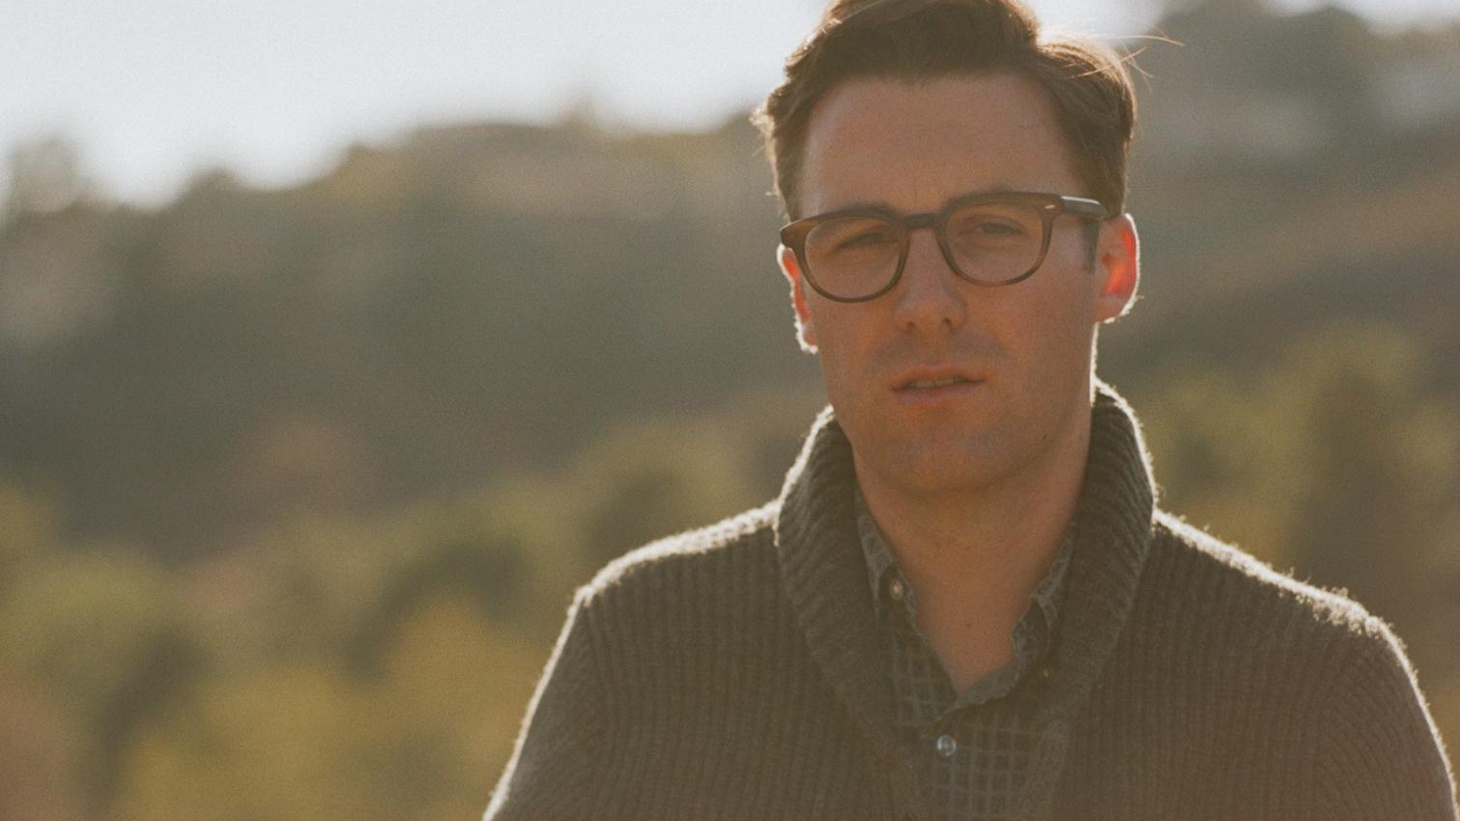 The soul-driven sound of Huntington Beach native Nick Waterhouse made his debut a hit and is fully intact on his upcoming sophomore release.